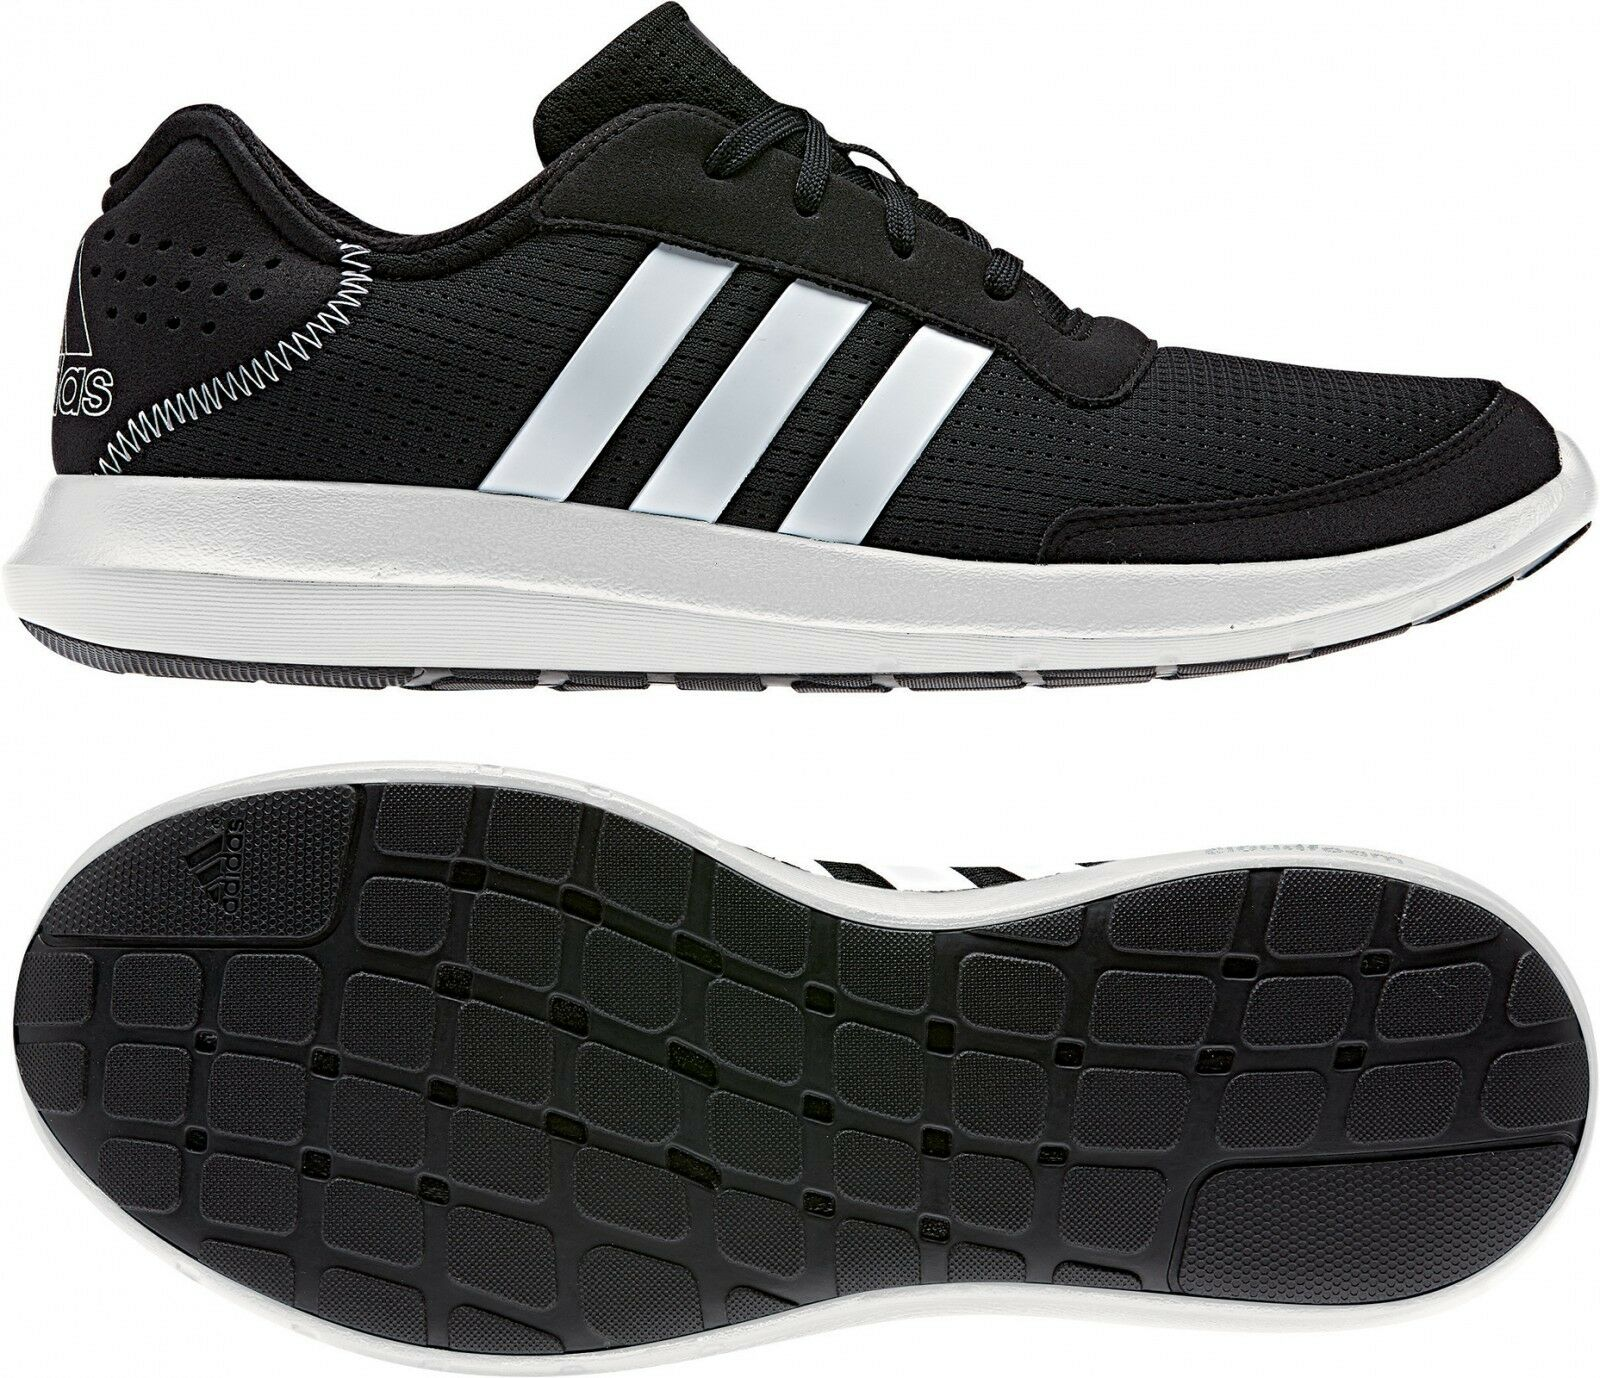 adidas Performance Herren Turnschuh element refresh m schwarz/weiß (BA7911)